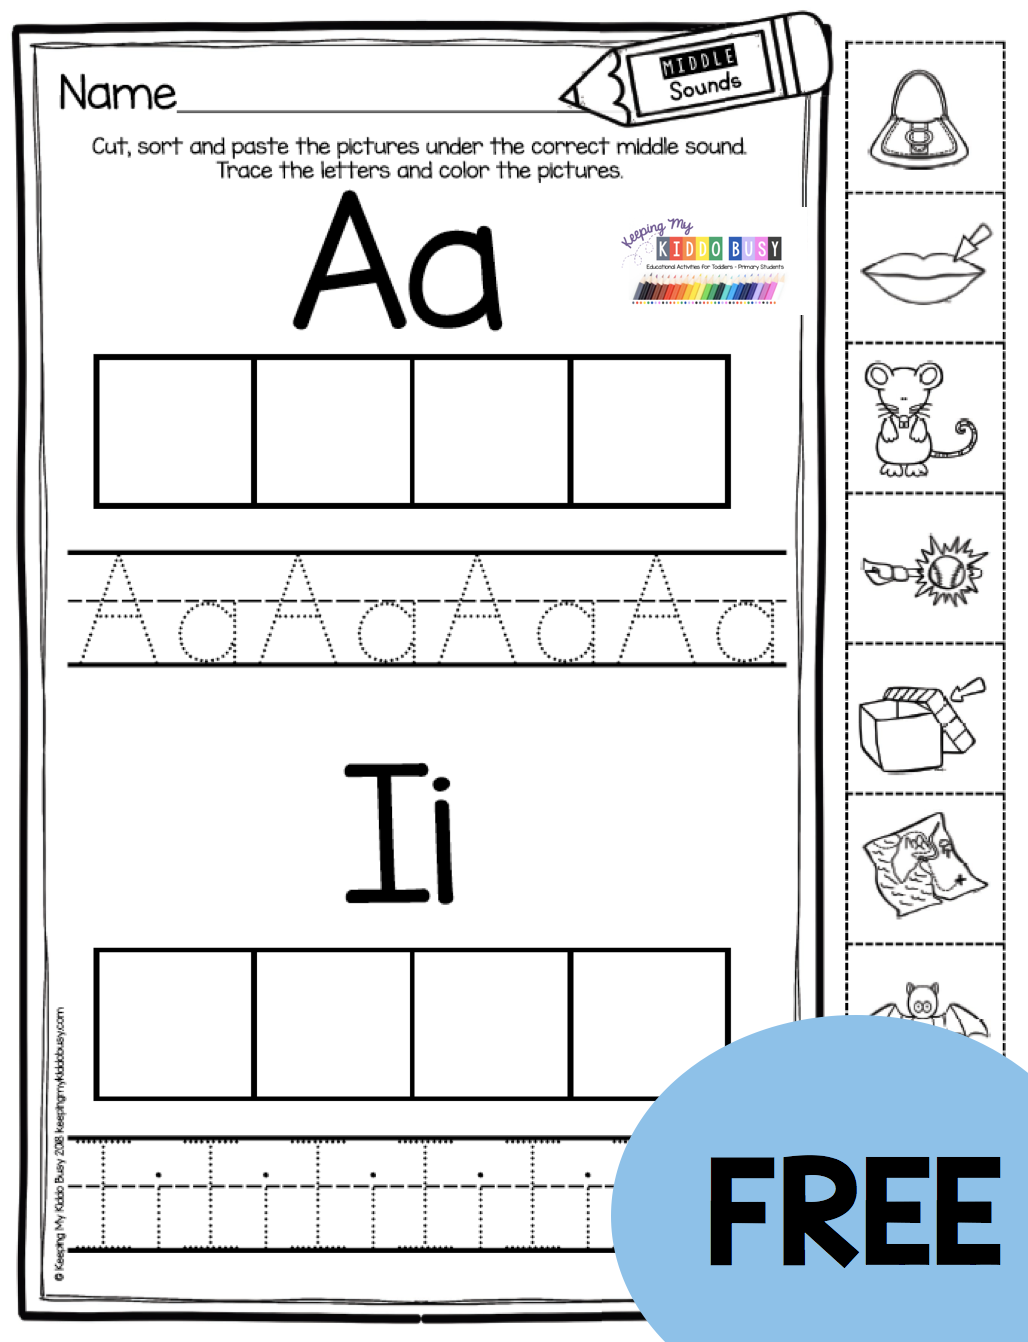 Free Phonics Worksheets And Activities For Teaching Short Vowels Cvc Words Kindergarten First Grade Cvc Words Kindergarten Phonics Lessons Phonics [ 1342 x 1028 Pixel ]